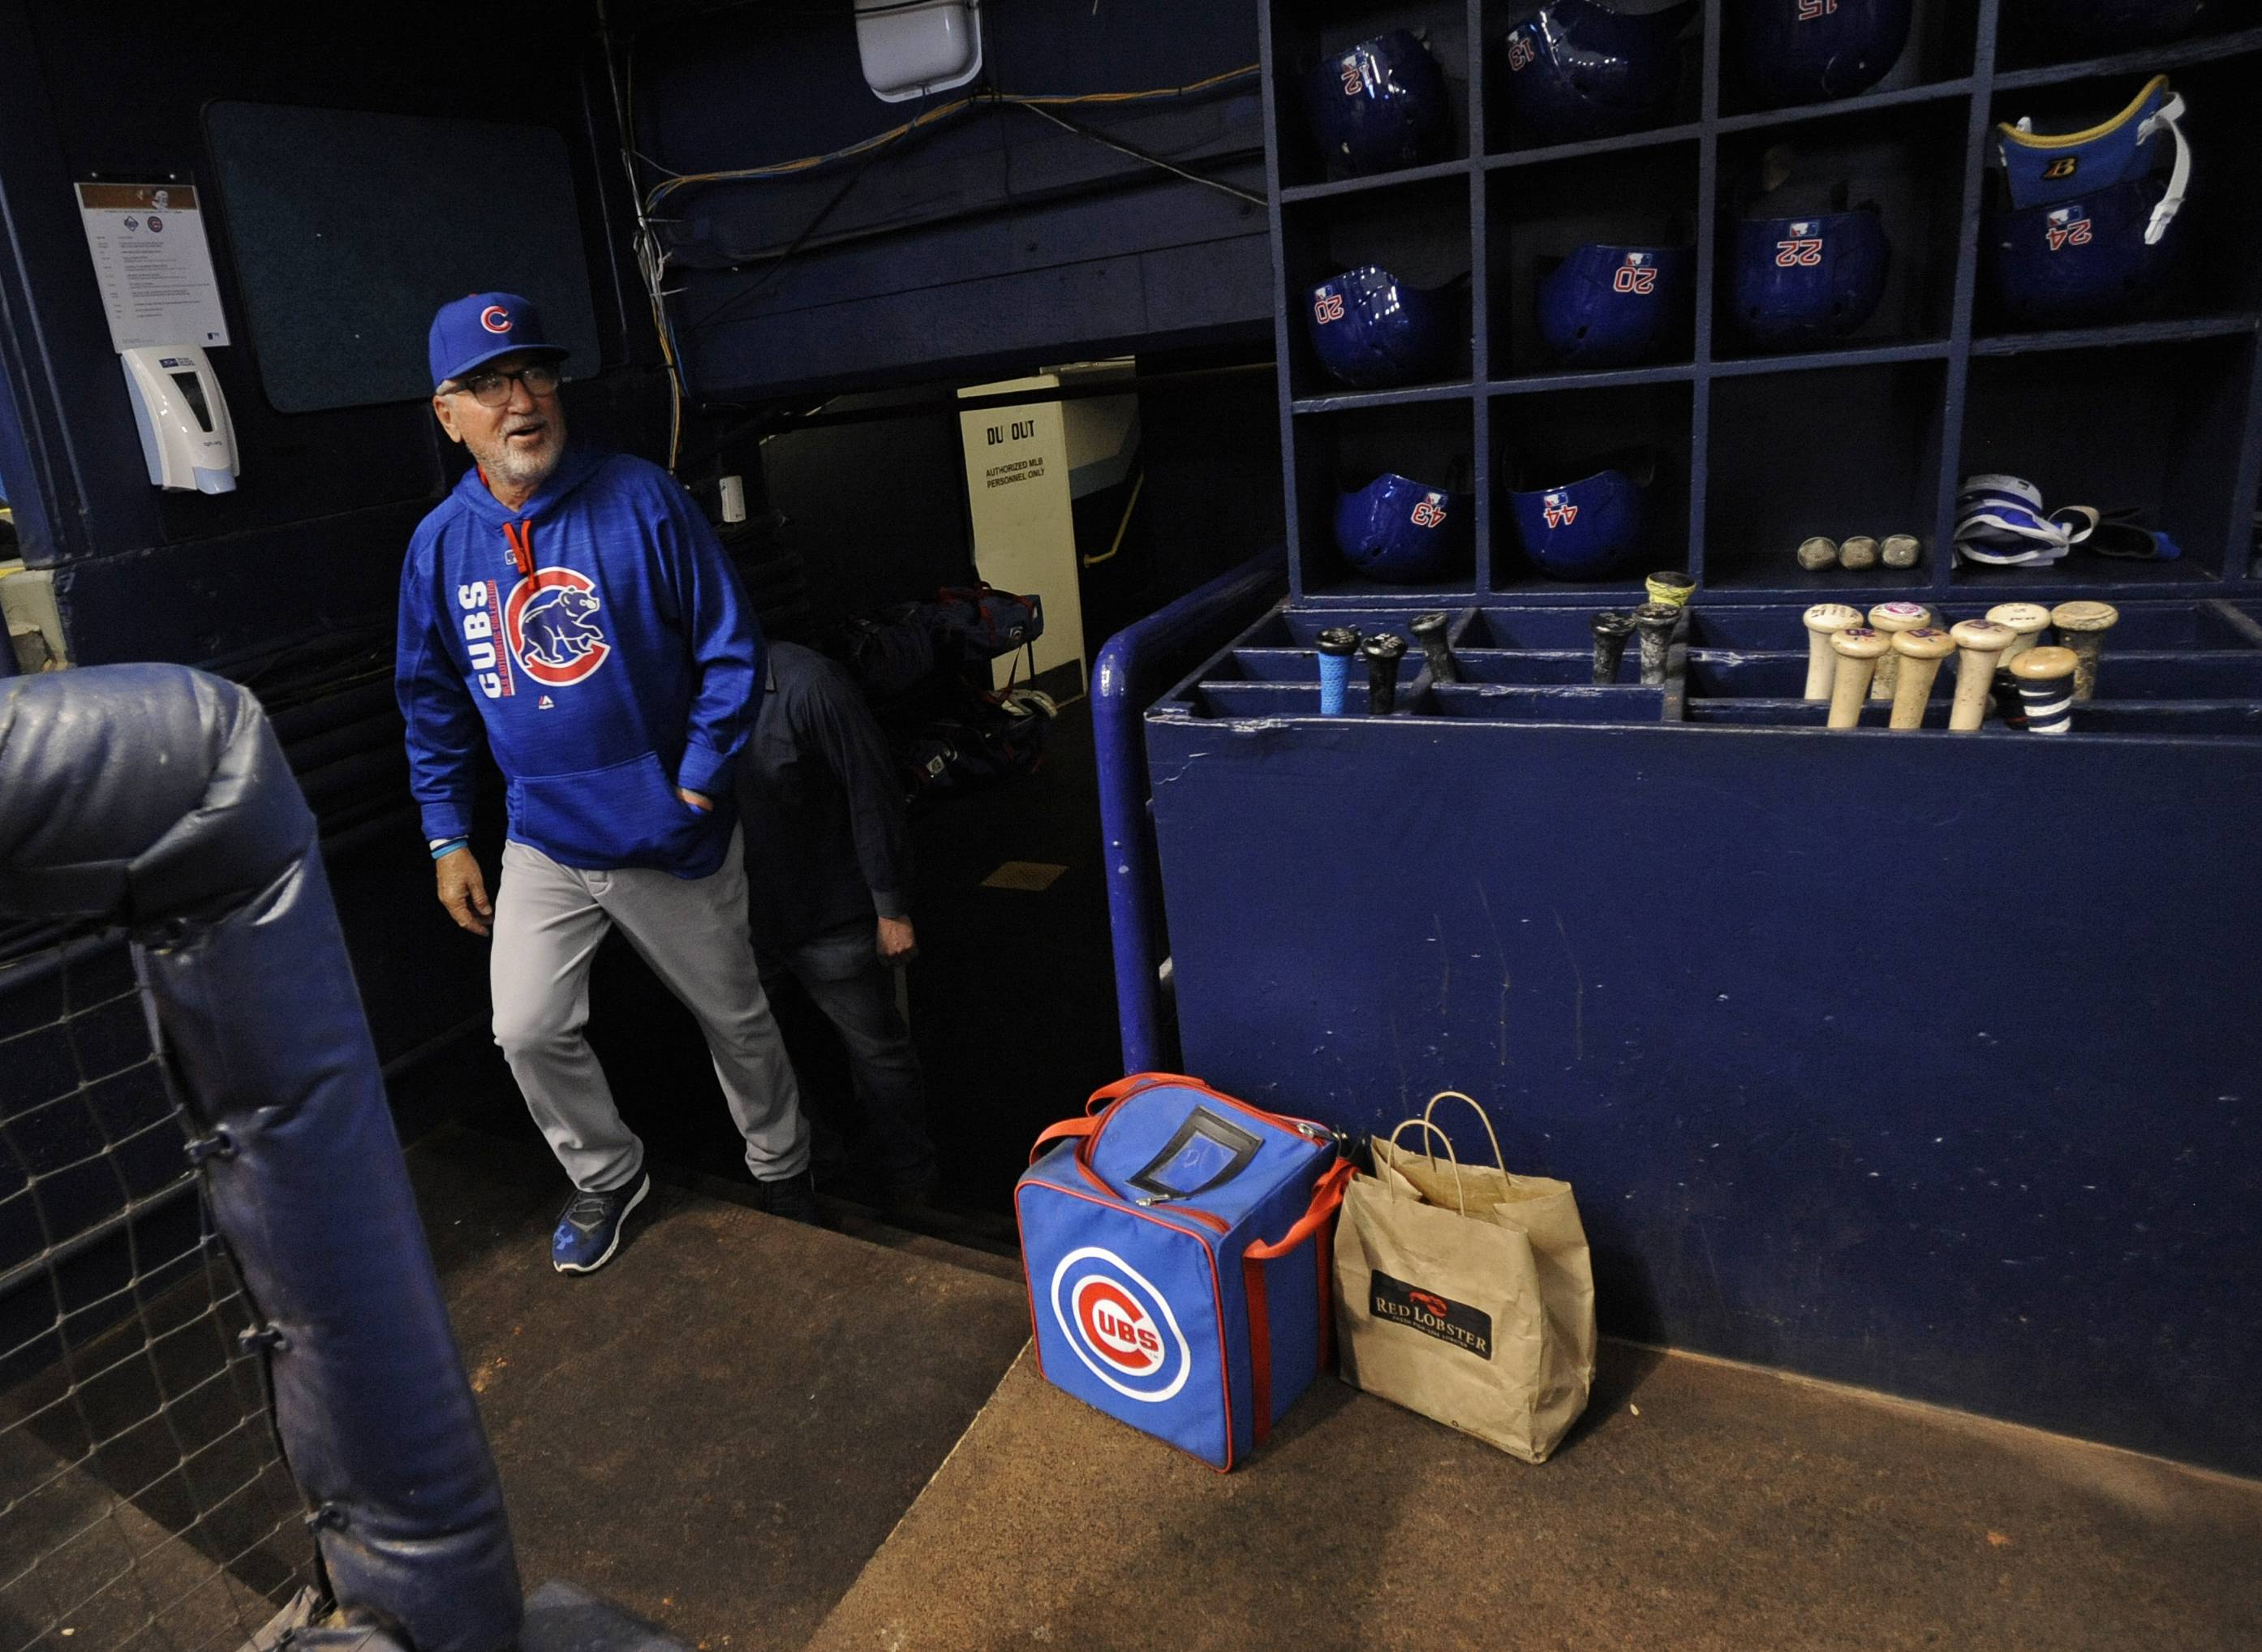 Chicago Cubs manager Joe Maddon walks into the visitor's dugout during warmups before a baseball game against the Tampa Bay Rays Tuesday, Sept. 19, 2017, in St. Petersburg, Fla.